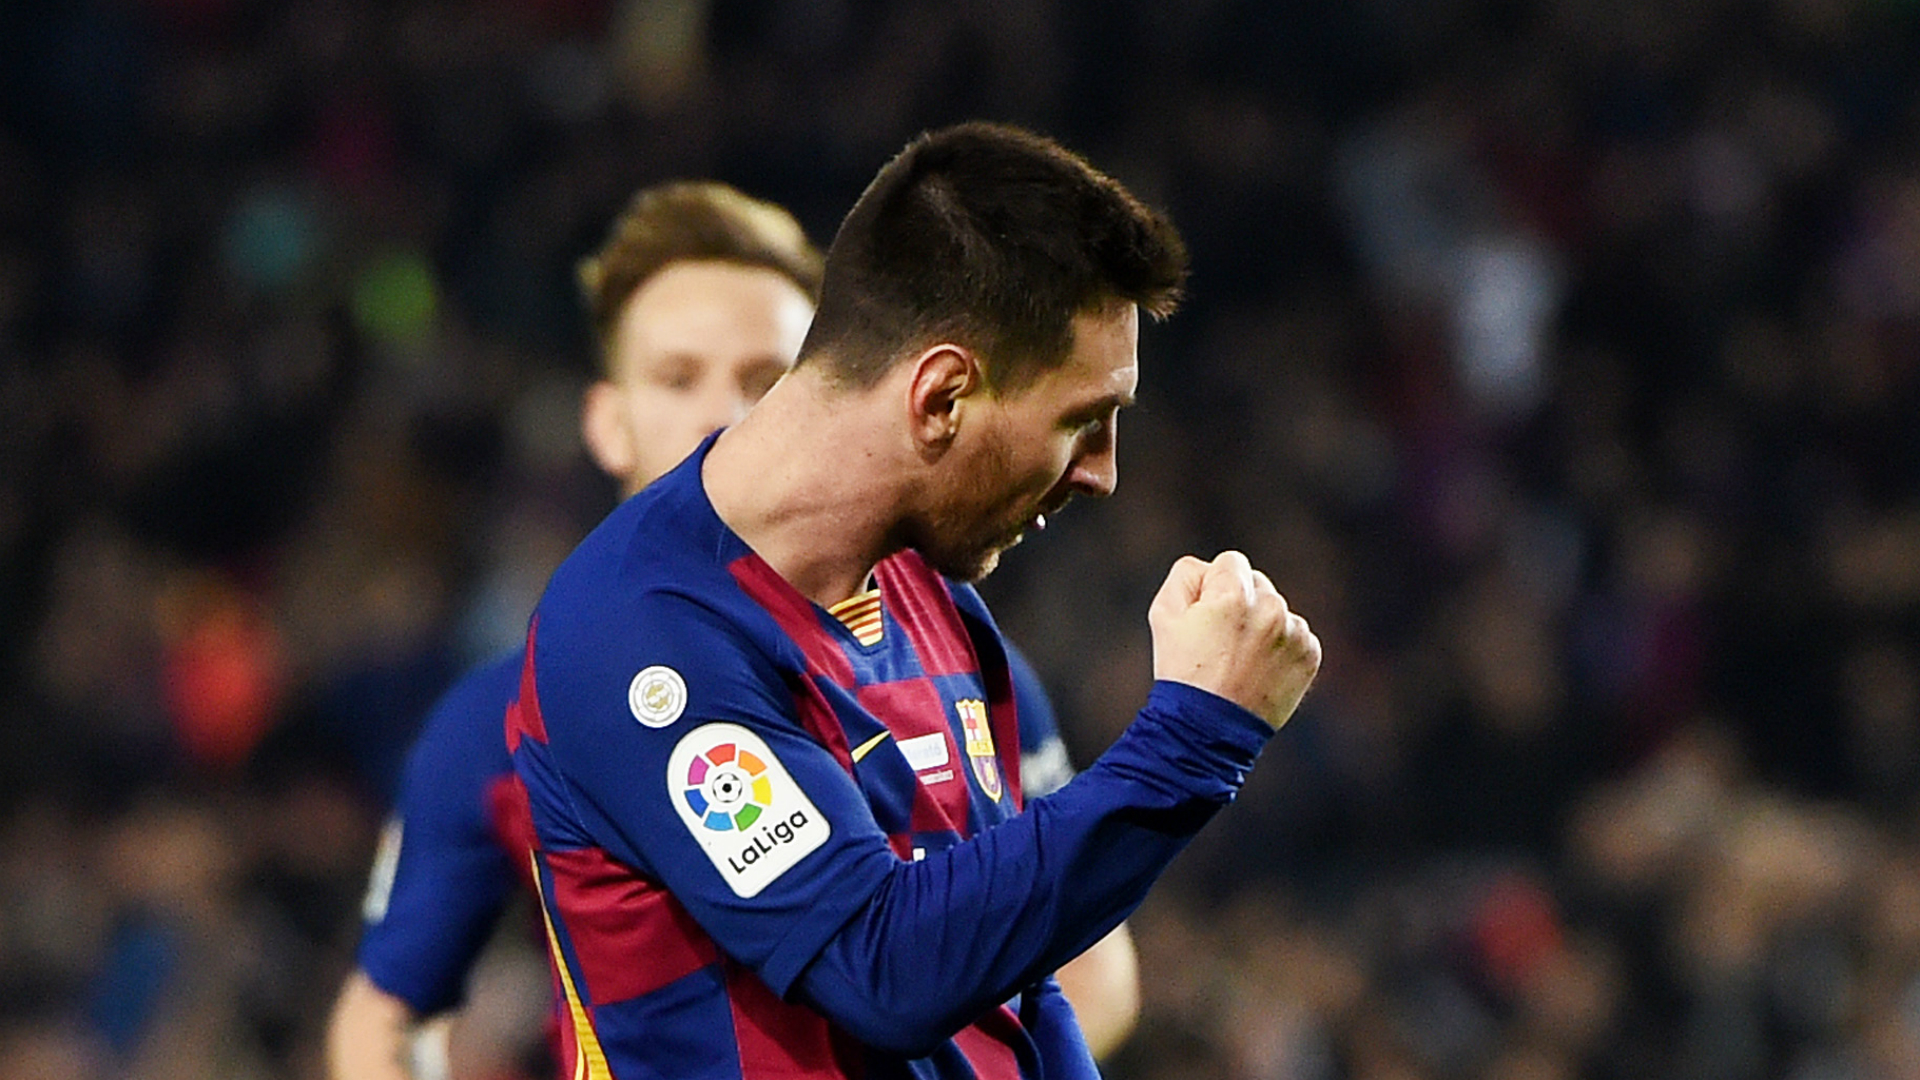 Messi reaches double figures for record 14th LaLiga season running